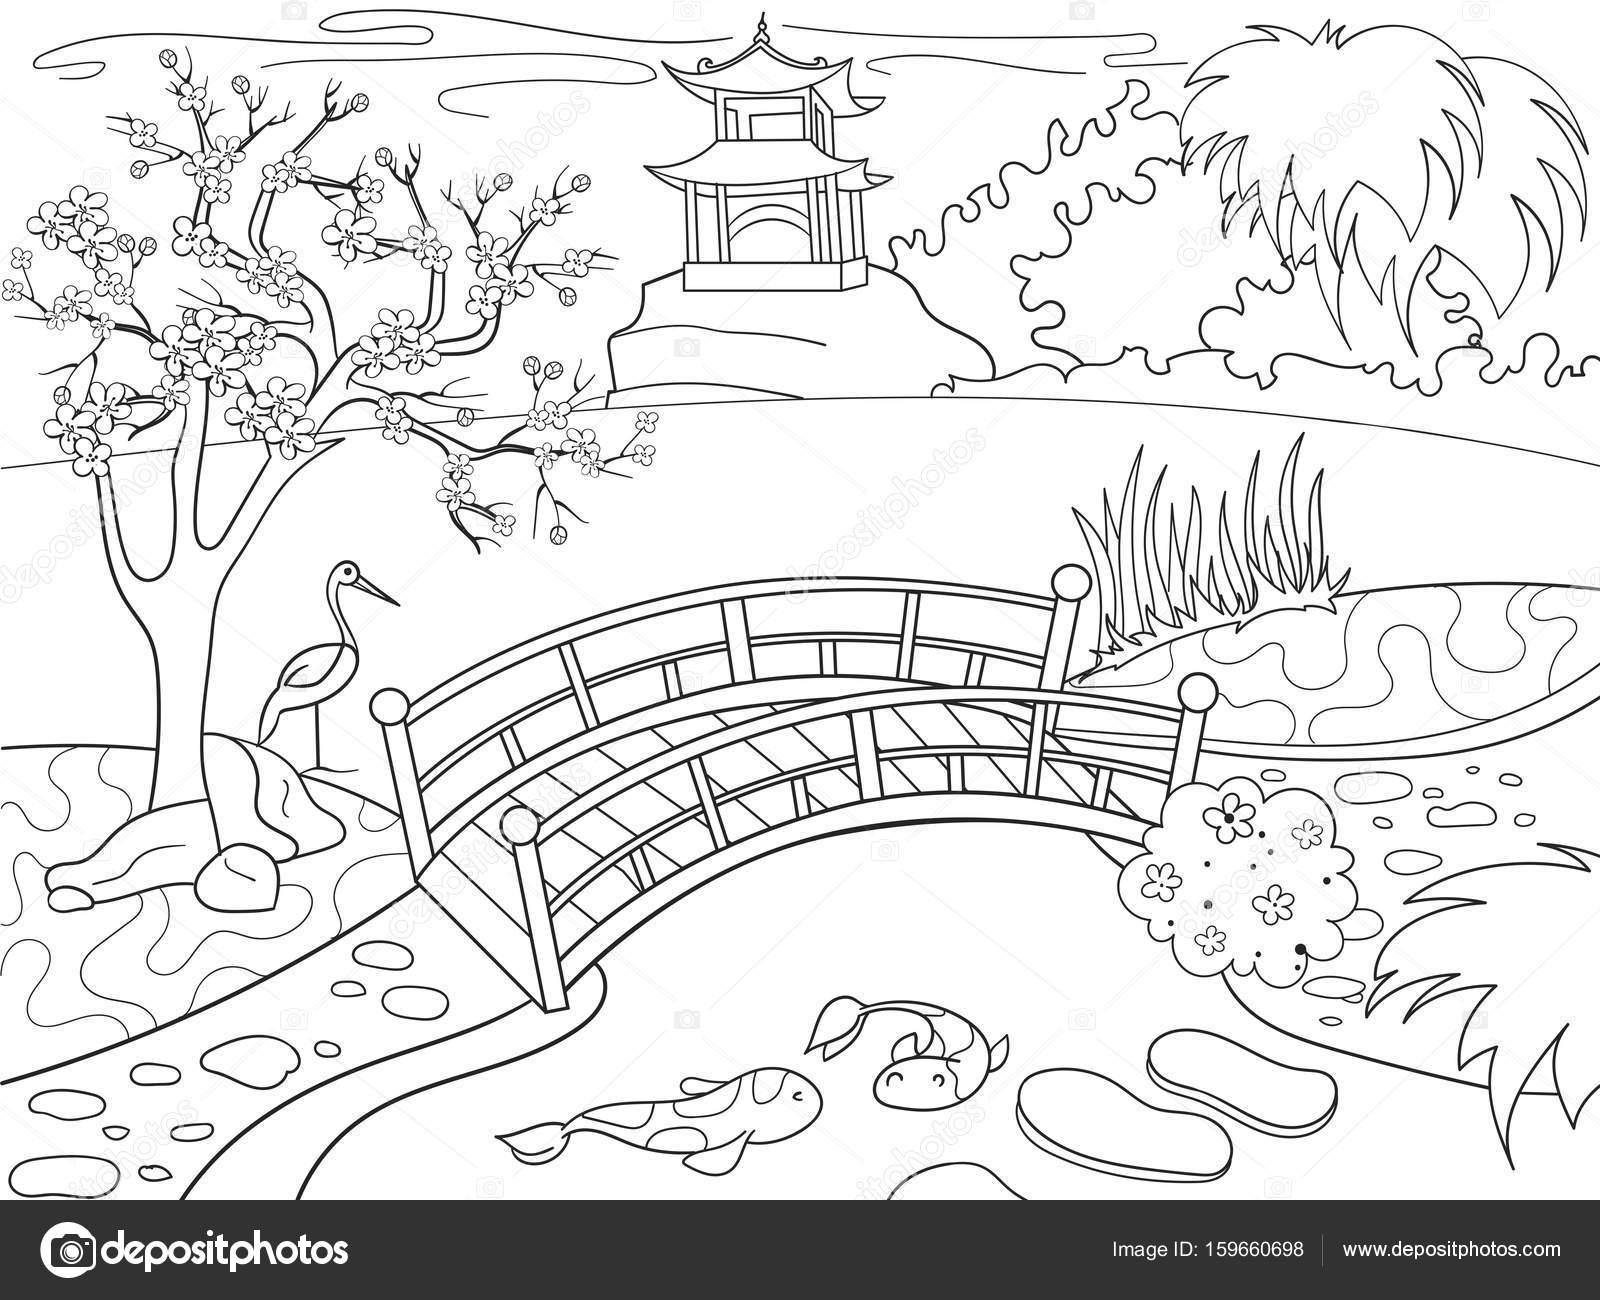 1600x1300 Nature Of Japan Coloring Book For Children Cartoon. Japanese